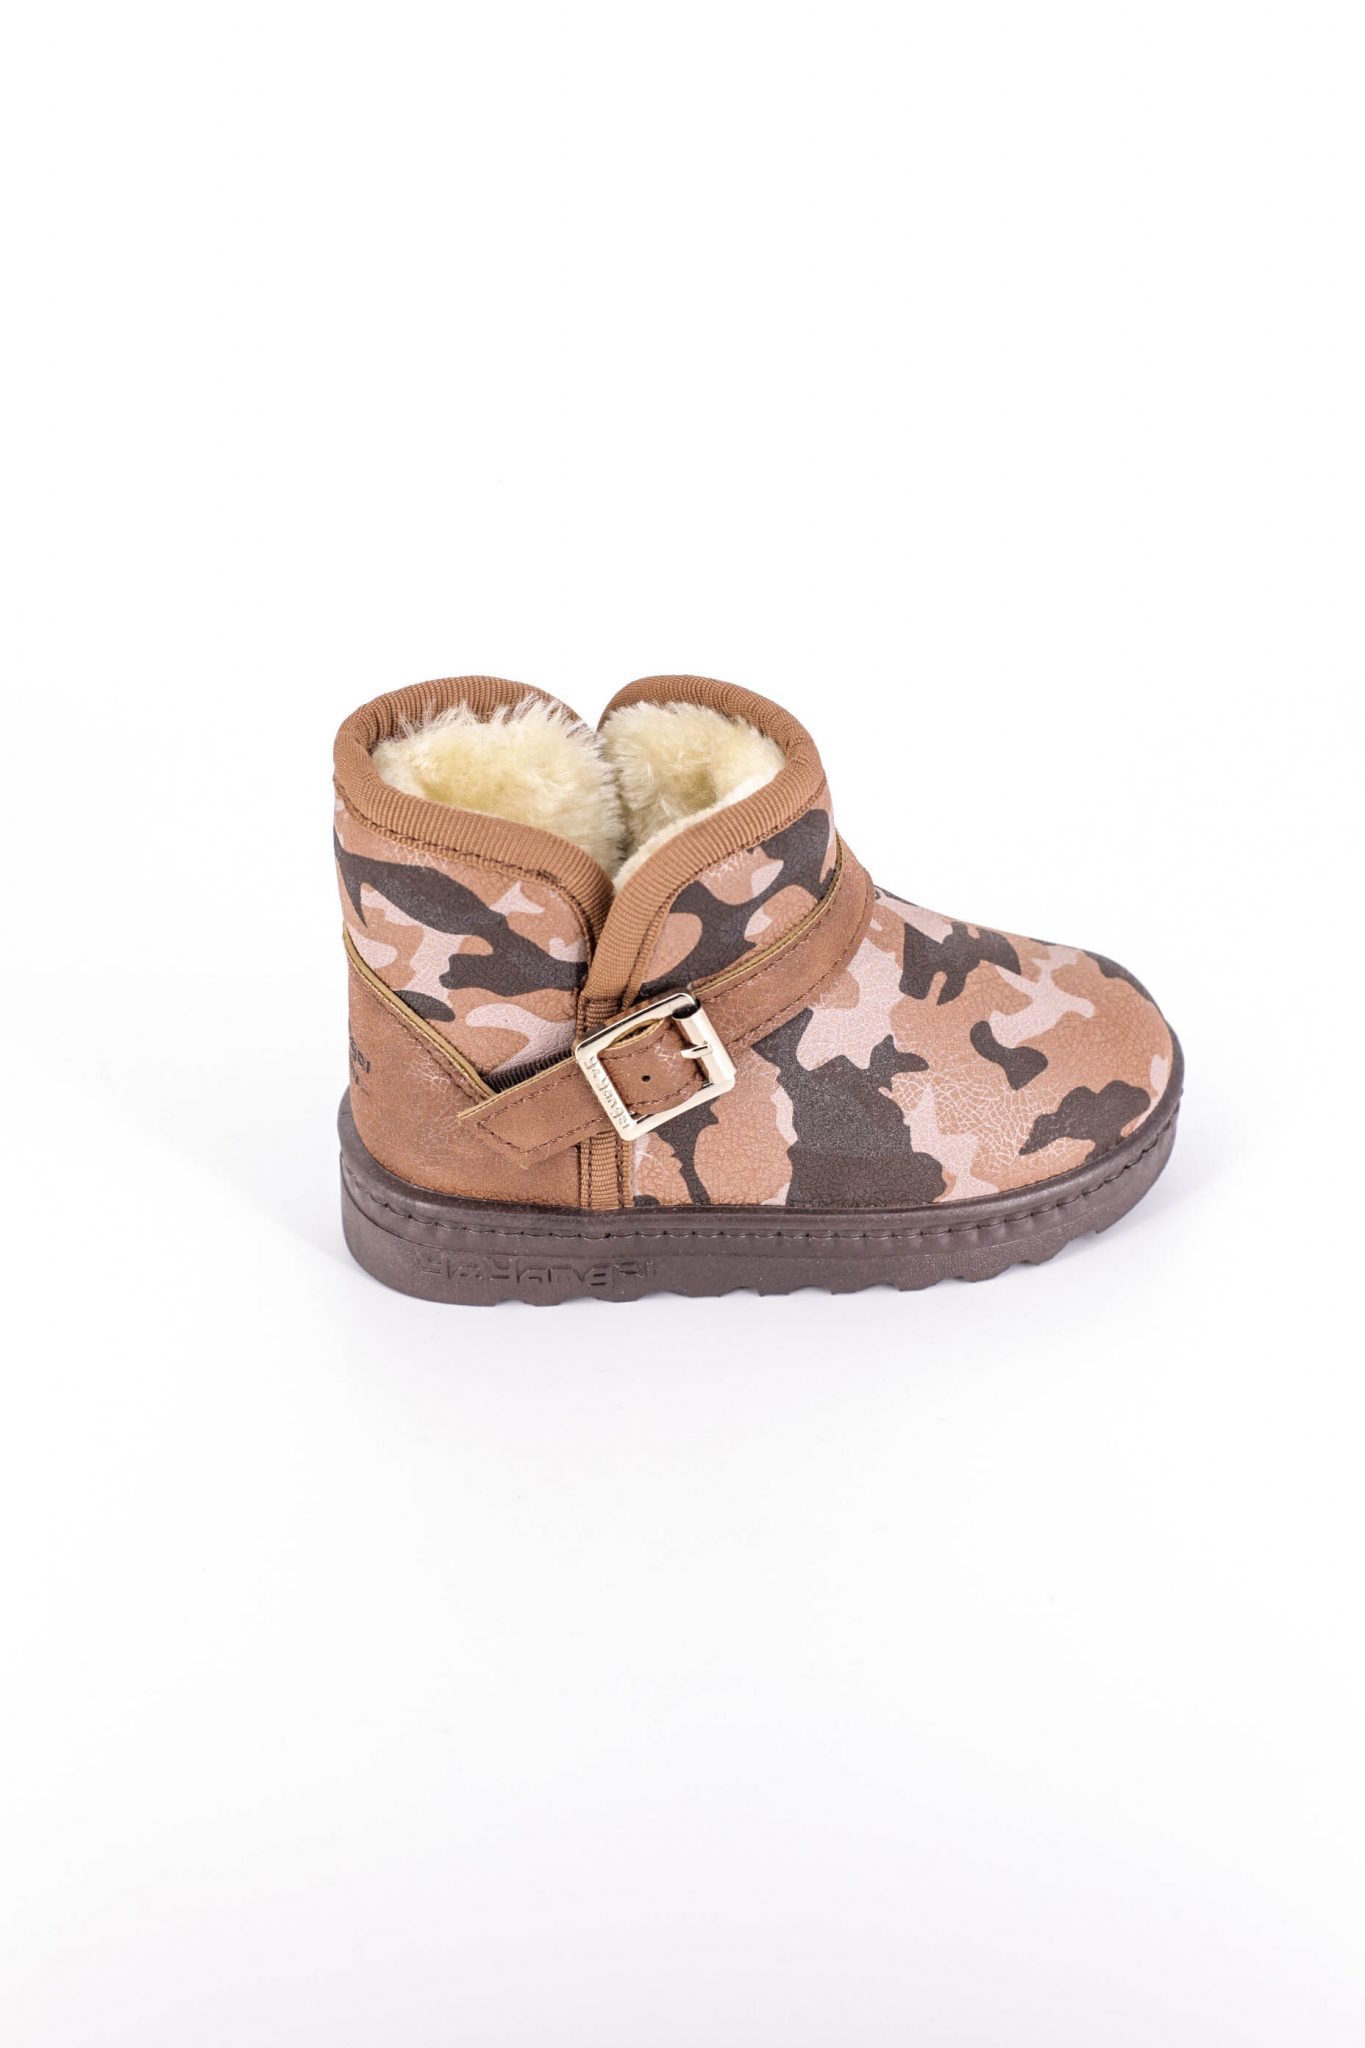 Cizme Copii Tip UGG Army Brown